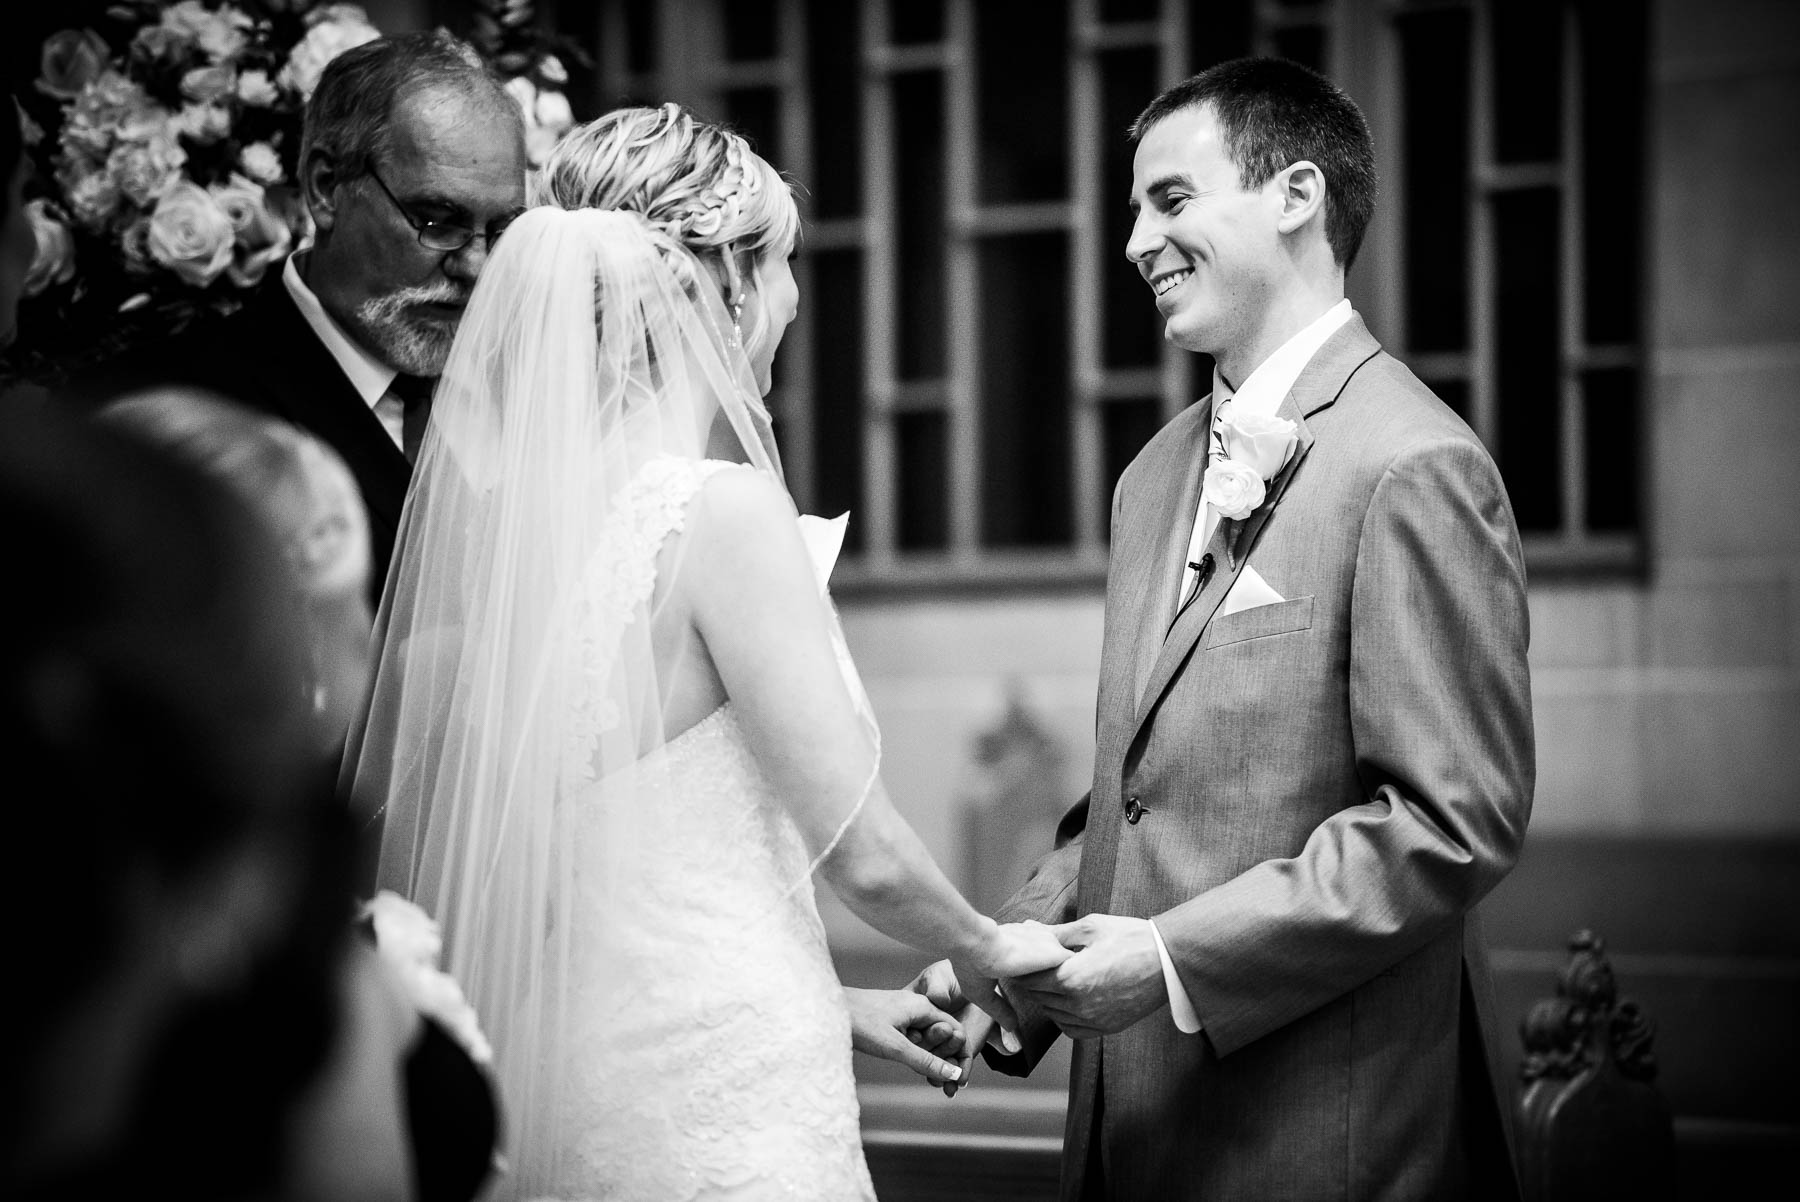 Groom smiles at the bride during their wedding ceremony at Baker Memorial United Methodist Church in St. Charles